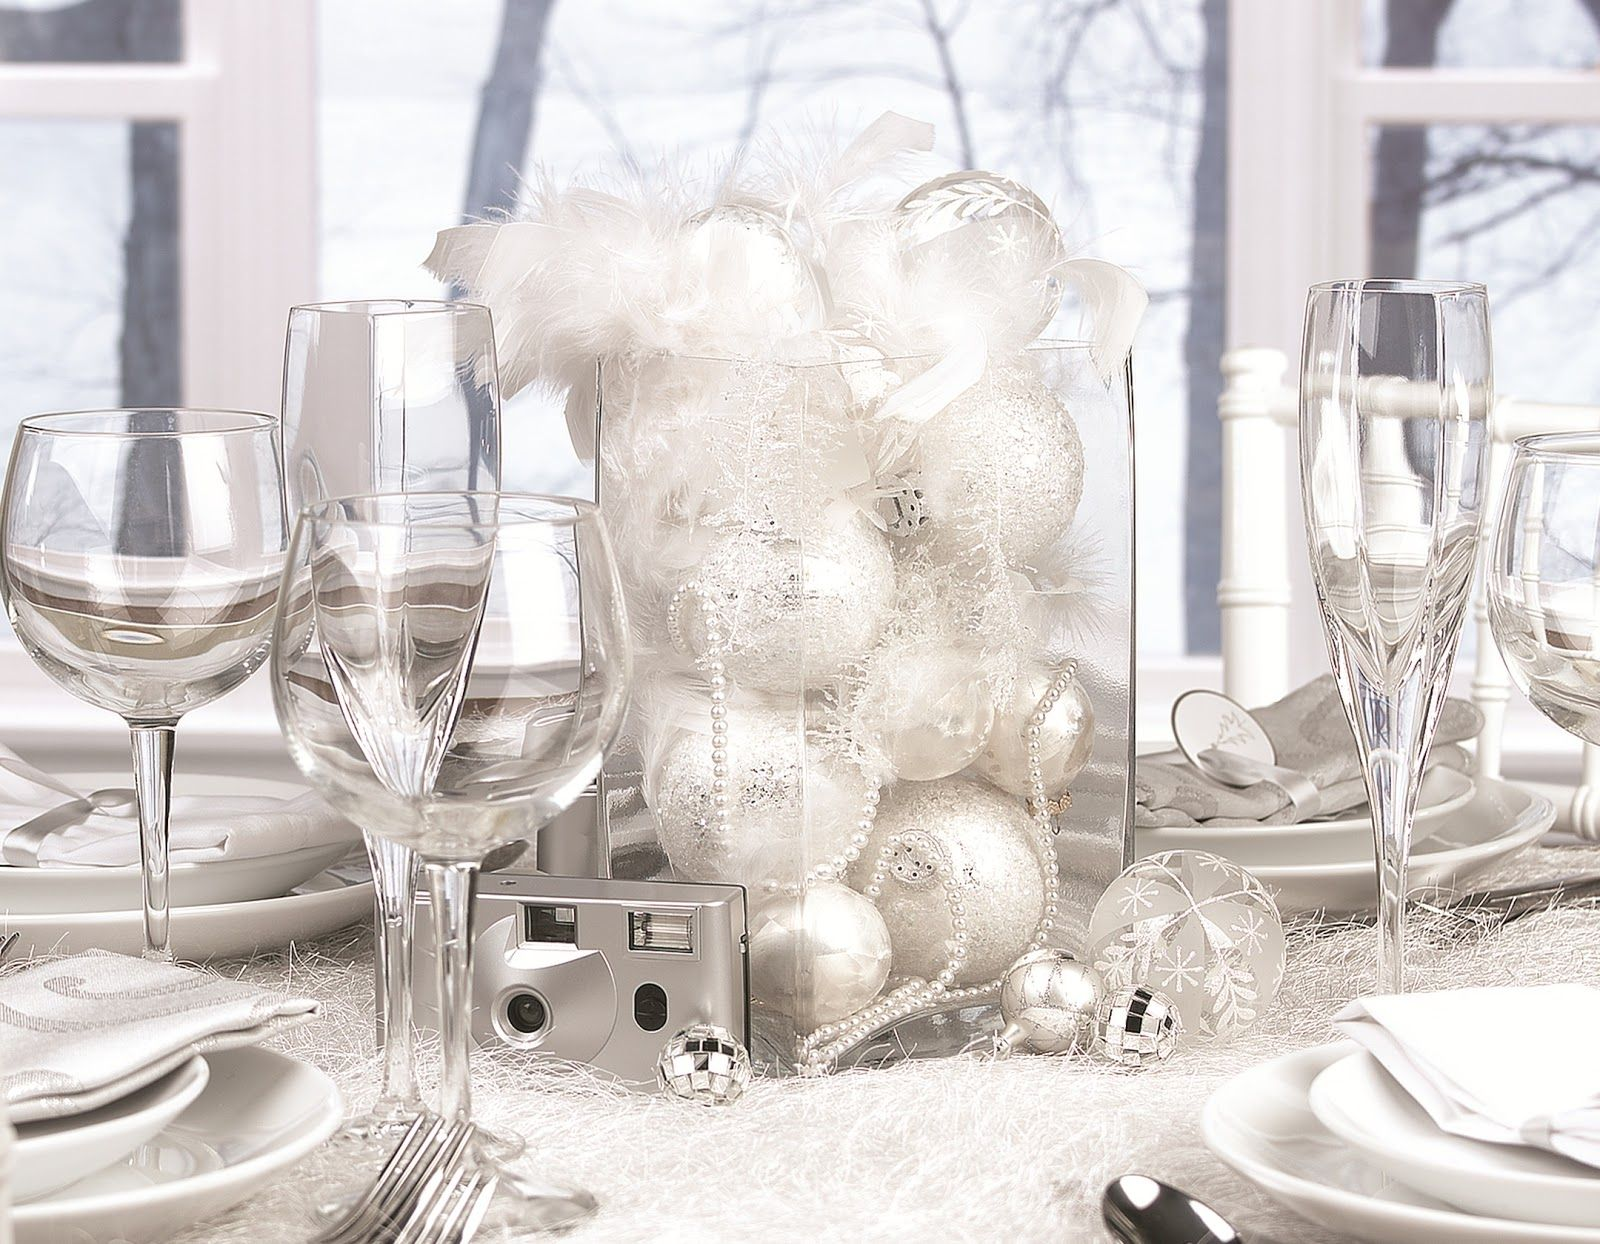 Dining Room White And Silver Christmas Ornaments For Centerpieces Table Decor Ideas With Balls